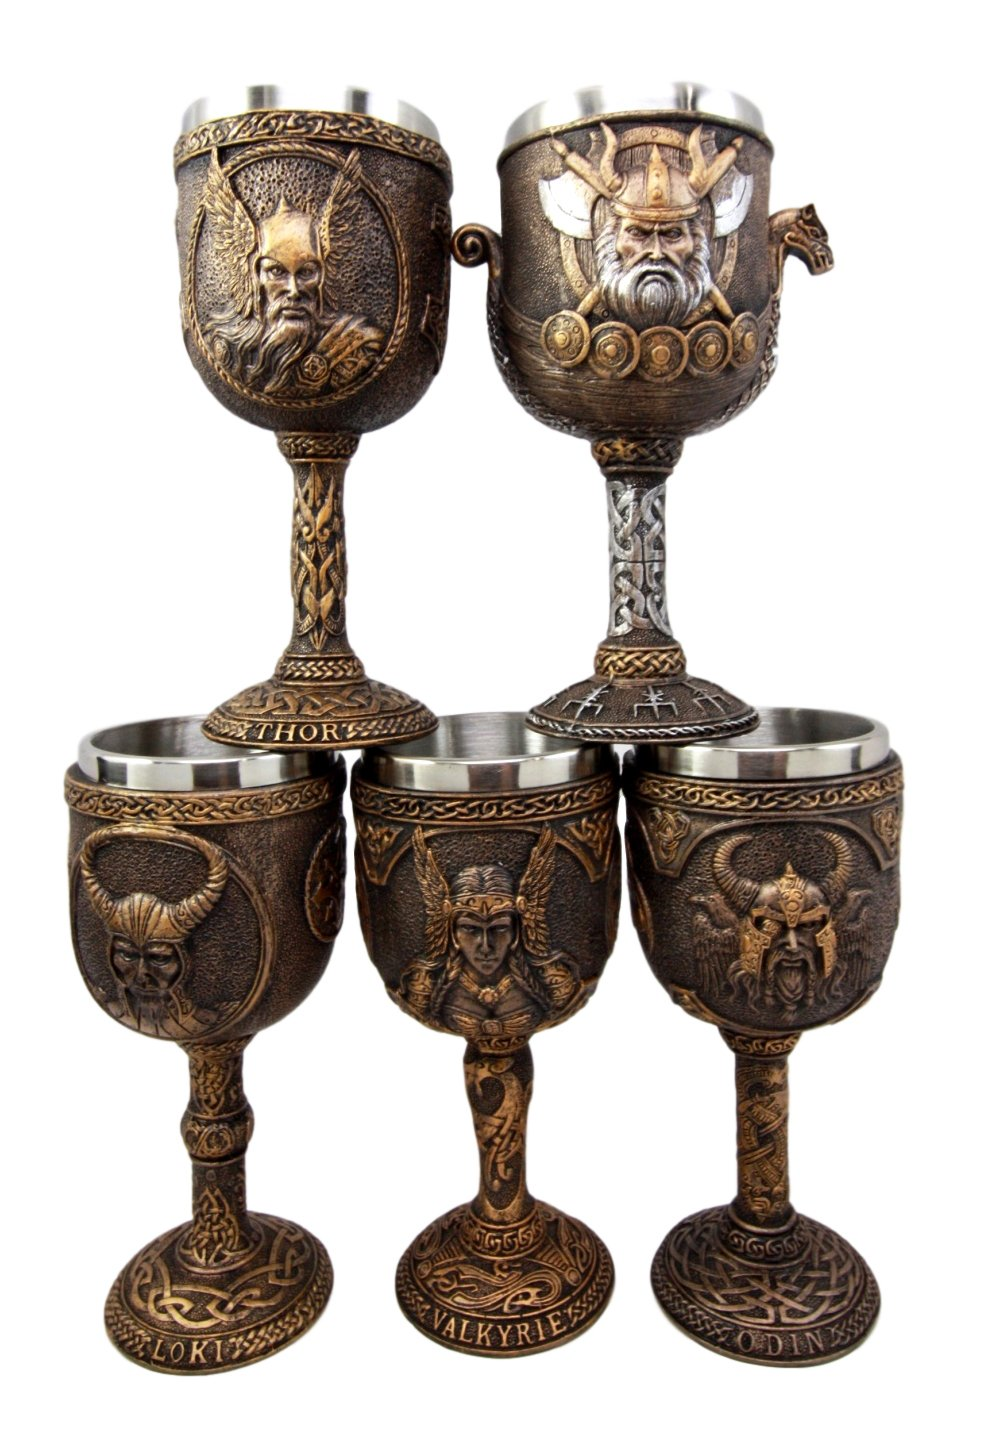 Atlantic Collectibles Norse Mythology Viking Deities Odin Loki Thor Valkyrie Battle Longship 7oz Resin Wine Goblet Chalice Set of 5 With Stainless Steel Liner